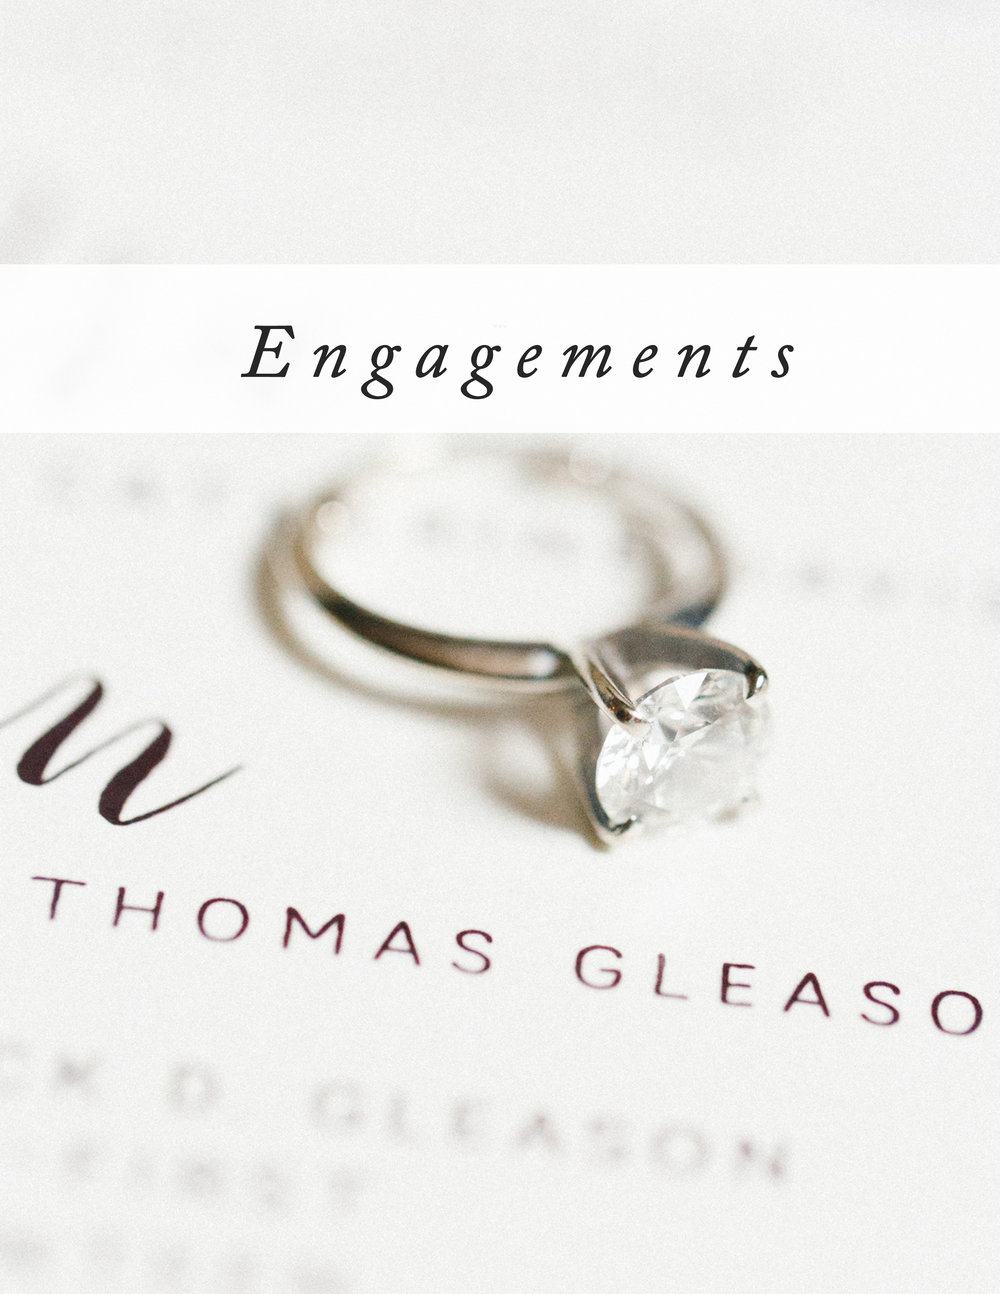 engagments.jpg